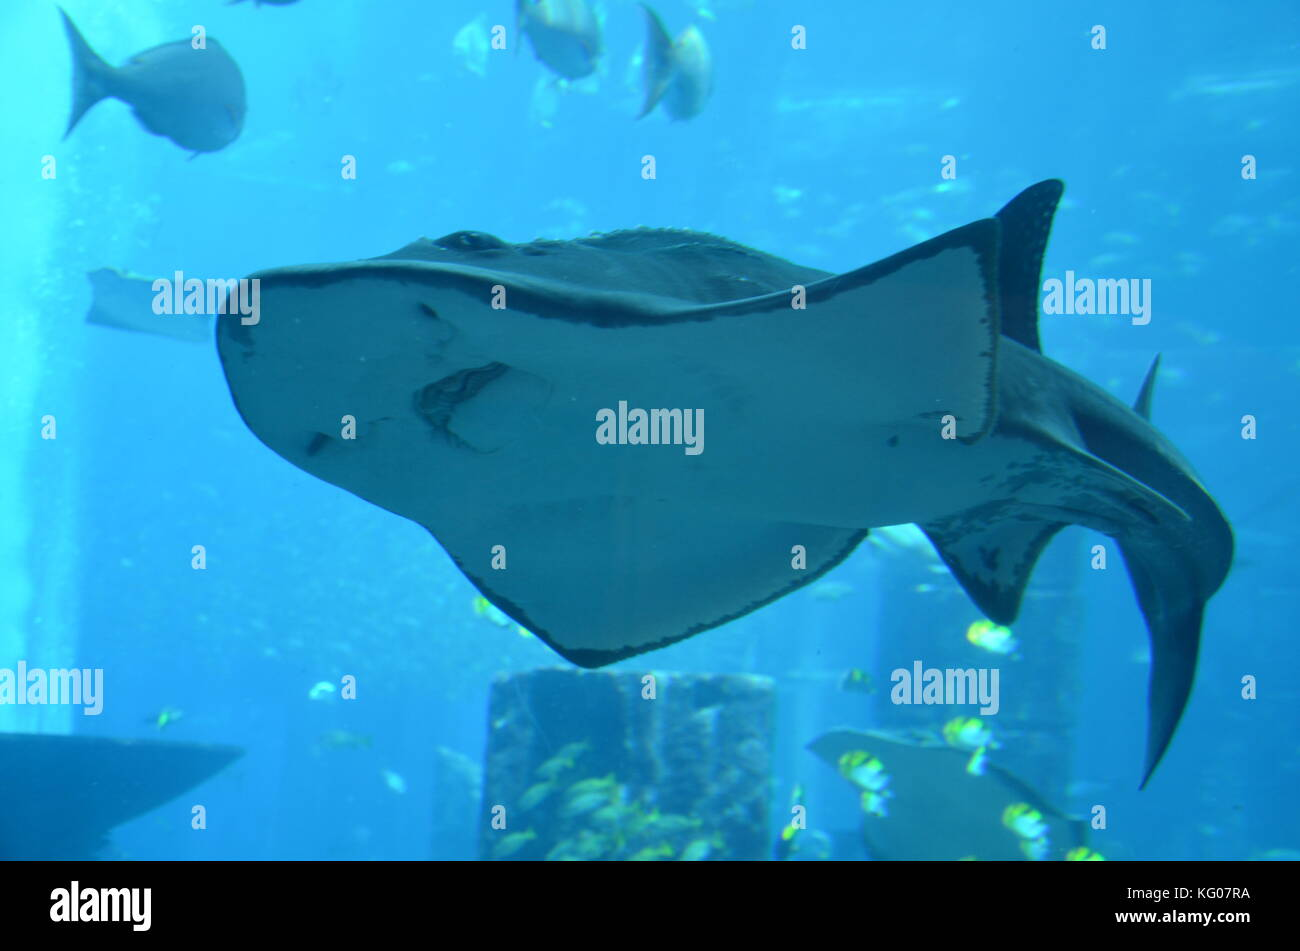 Large stingray in an aquarium in Atlantis the Palm Dubai. - Stock Image